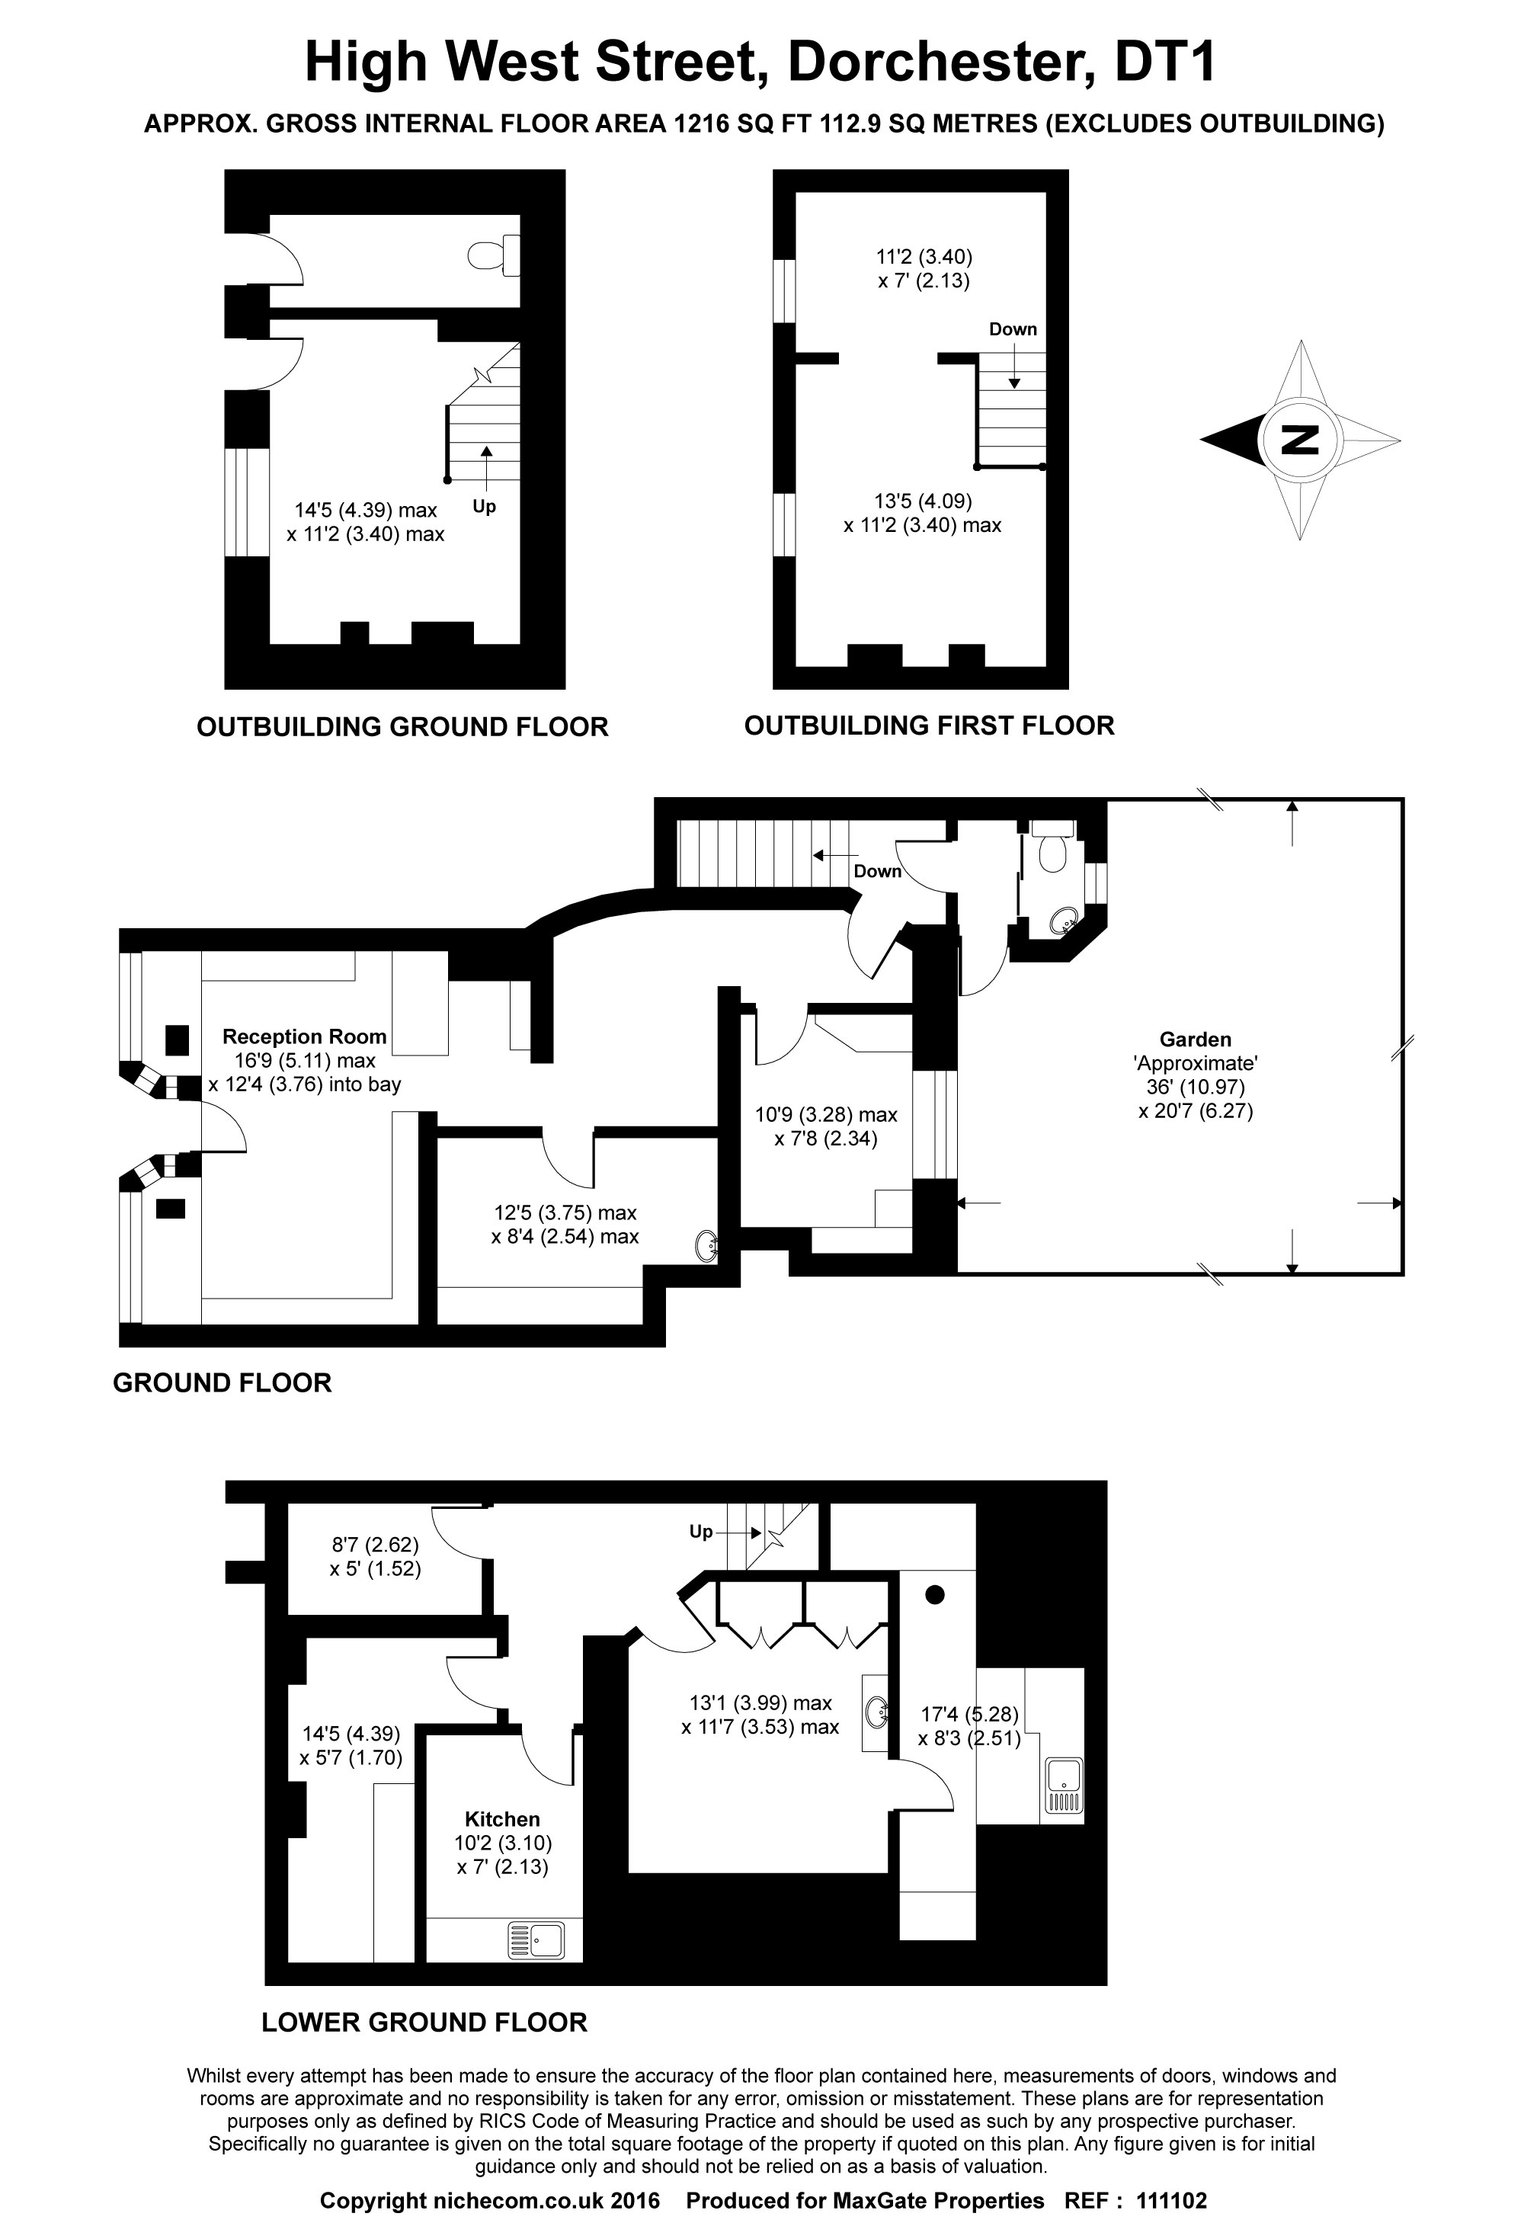 Floorplan for 9 High West Street